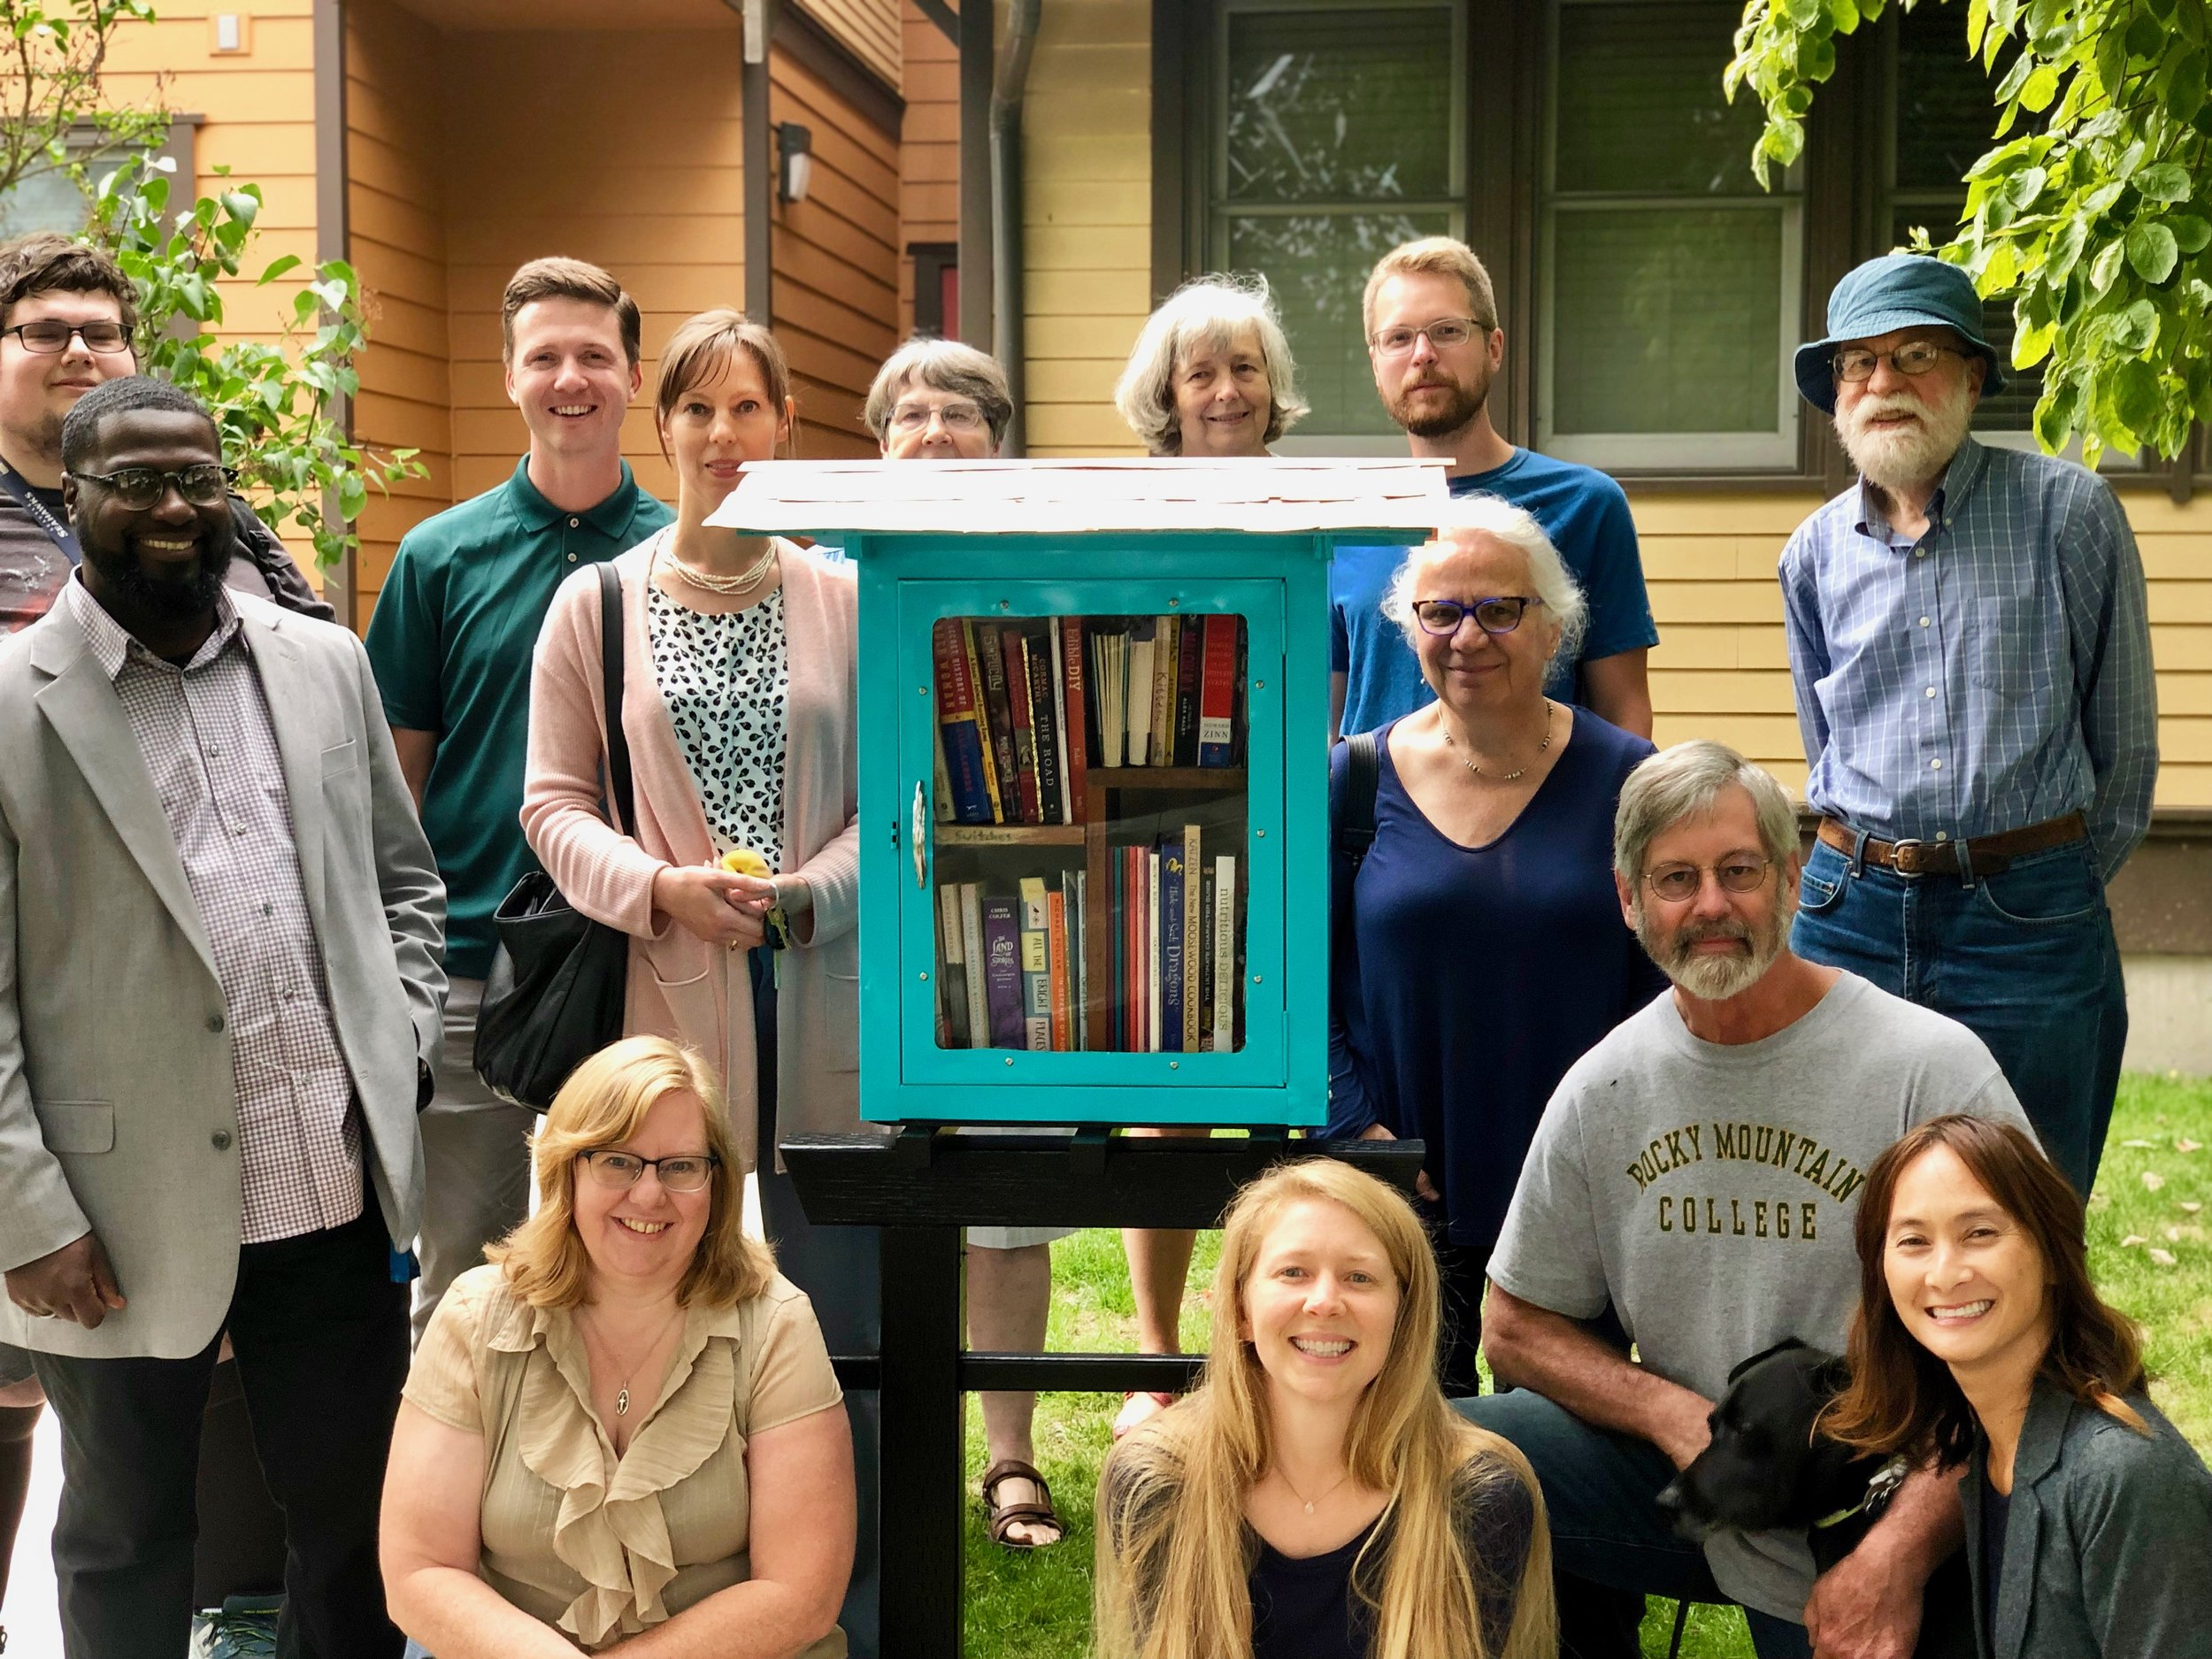 Members of the Peace Community, Tacoma Community, and Hilltop Neighborhood joined us to celebrate the installation of the Peace Library, talk about books, and fill up the shelves for the very first time.